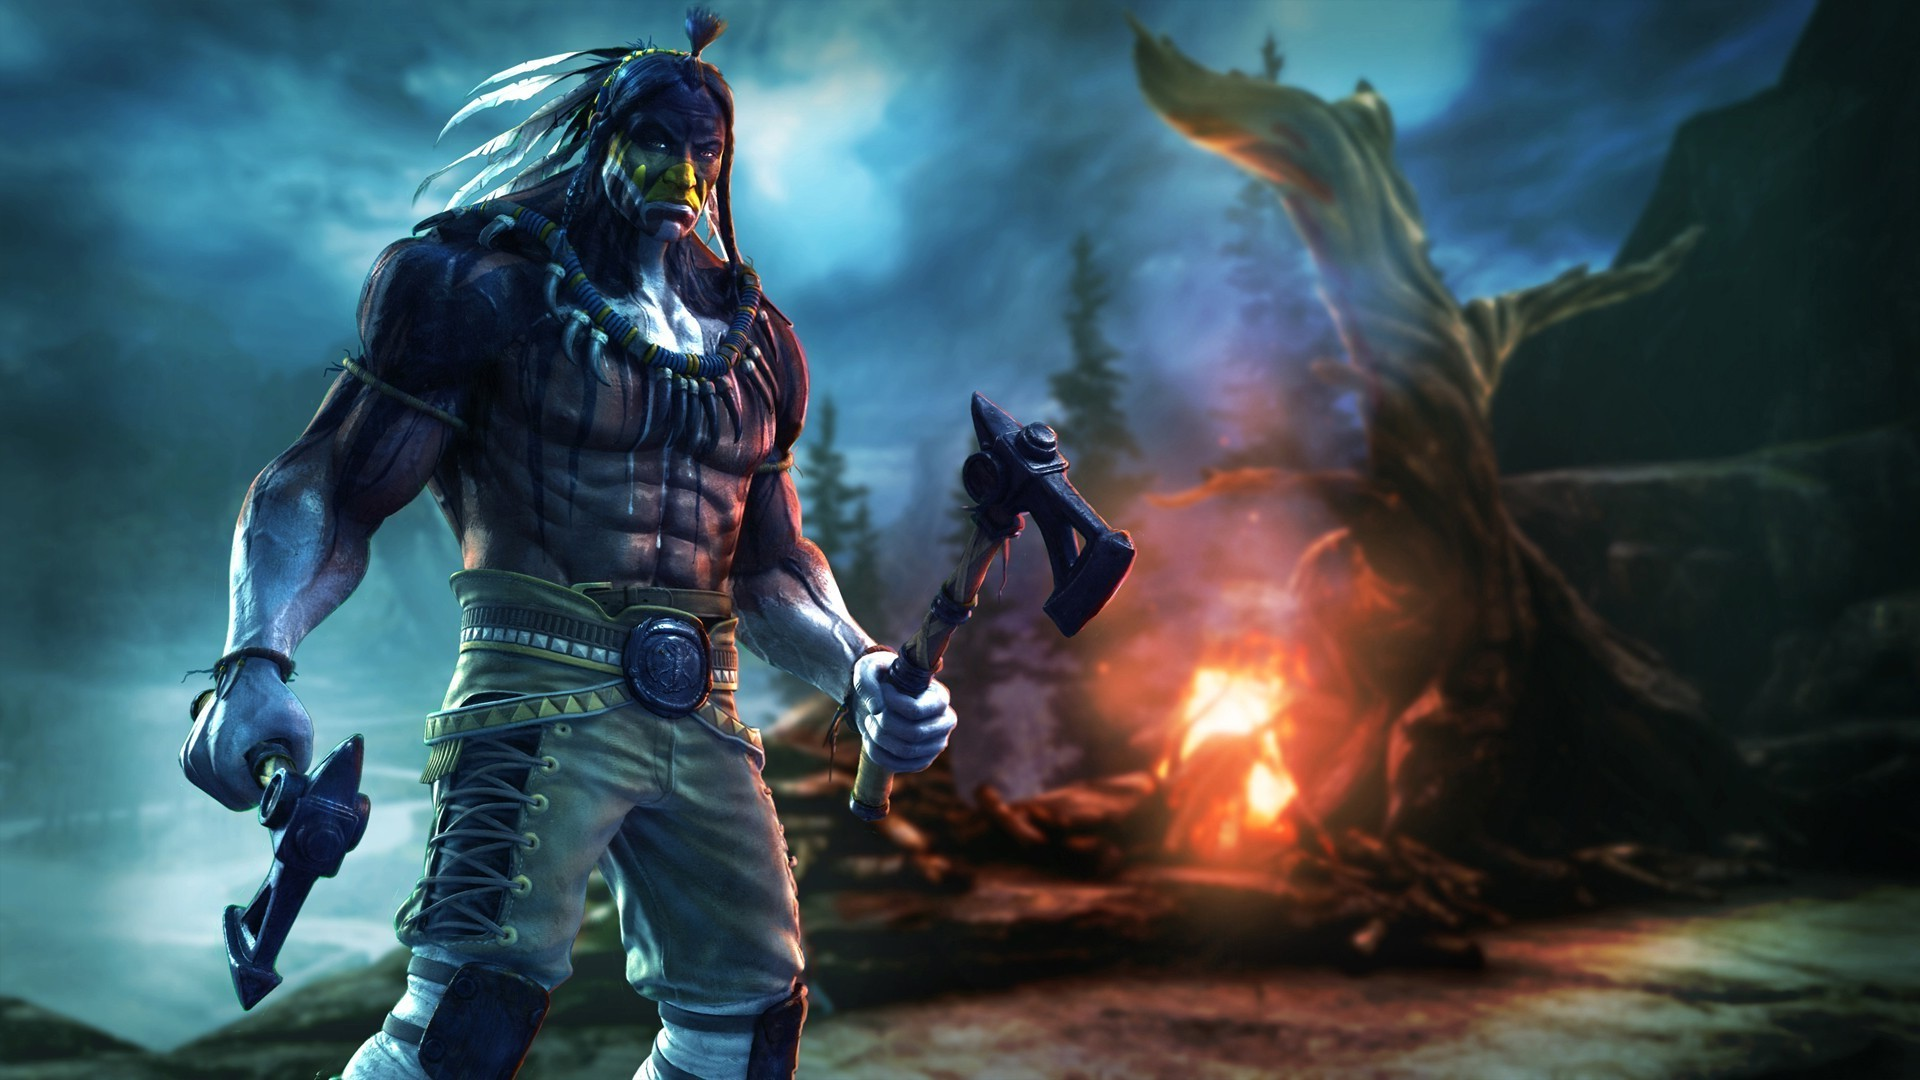 Killer Instinct, Video Games, Native Americans, Axes Wallpapers HD /  Desktop and Mobile Backgrounds